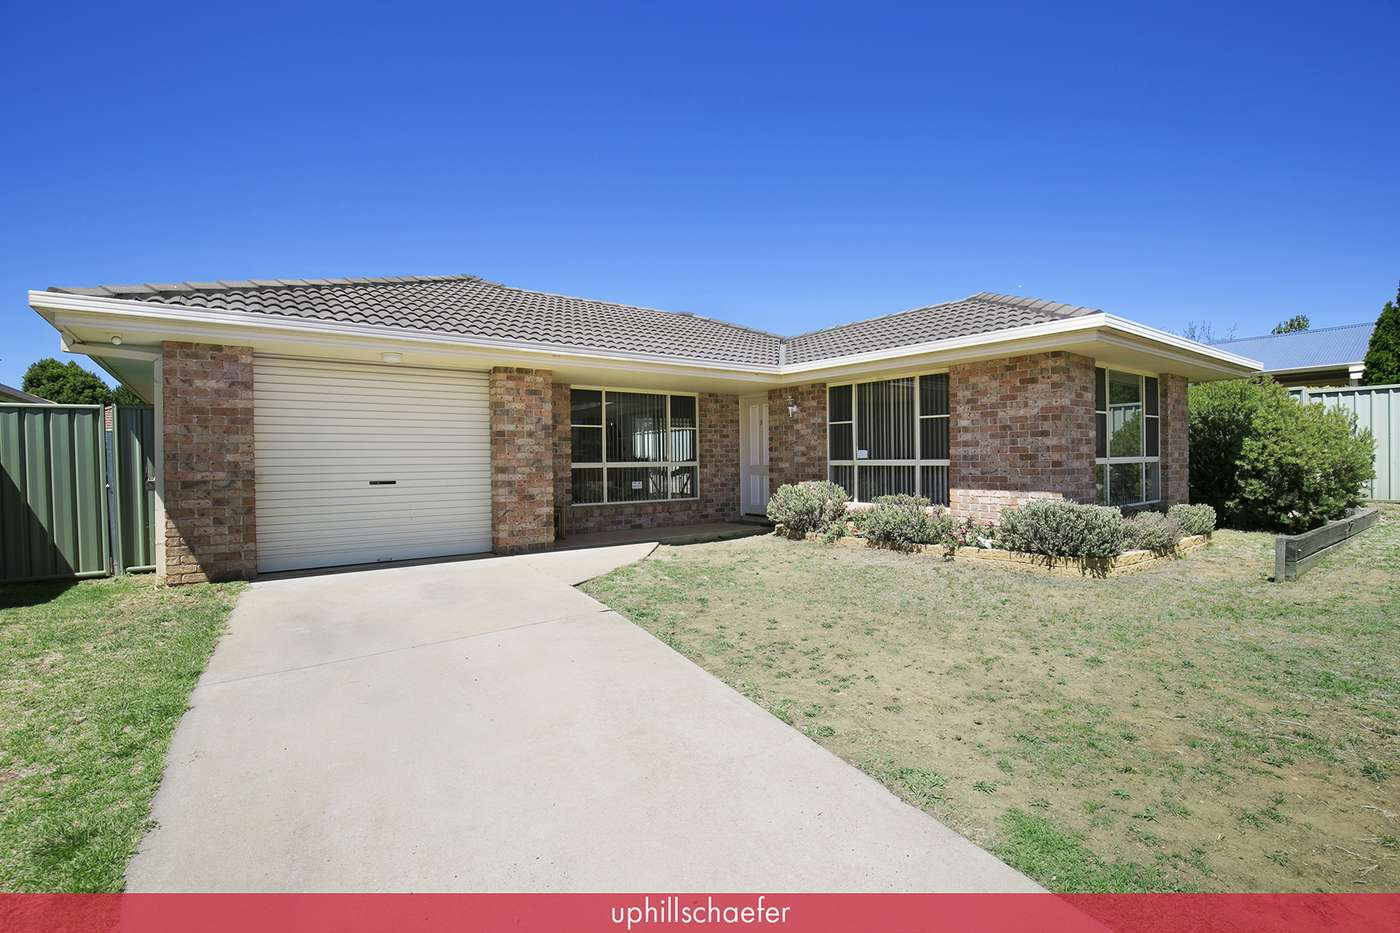 Main view of Homely apartment listing, 3/64 Claude Street, Armidale, NSW 2350